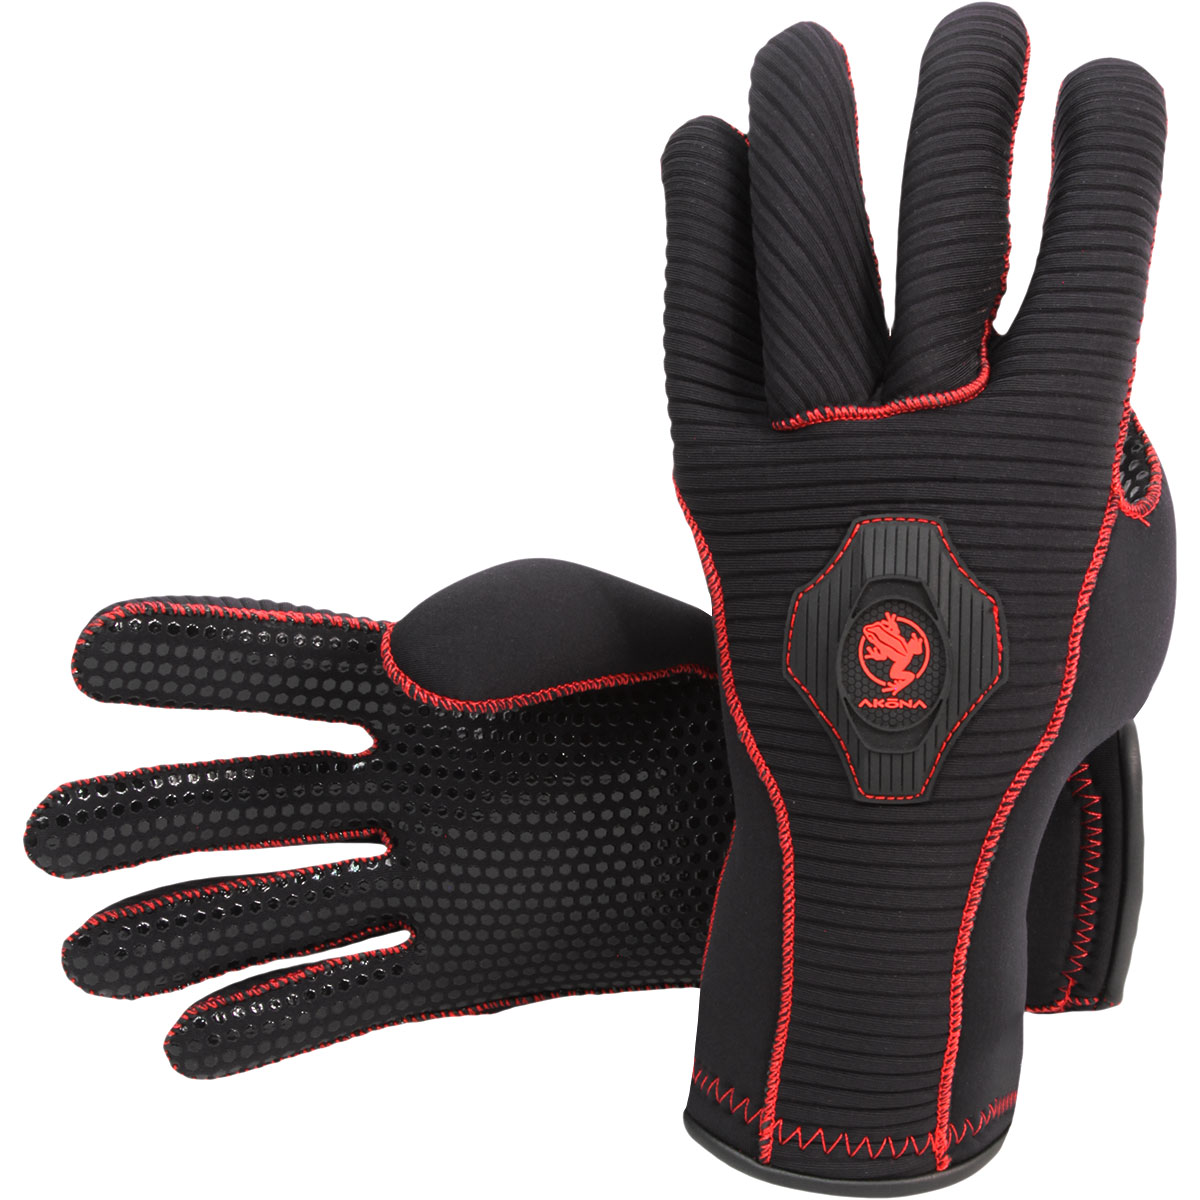 Akona 3.5mm Deluxe Dive Glove